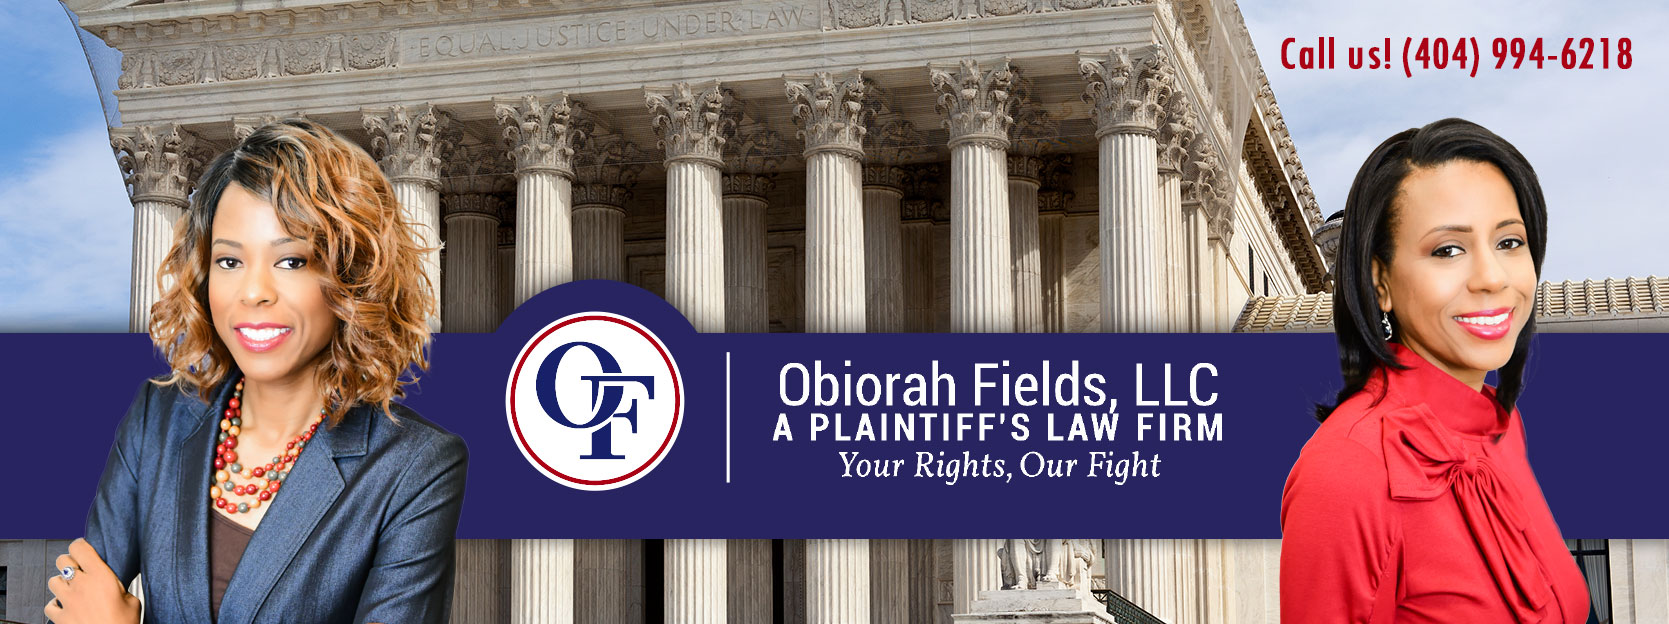 Obiorah Fields, LLC  Law Firm